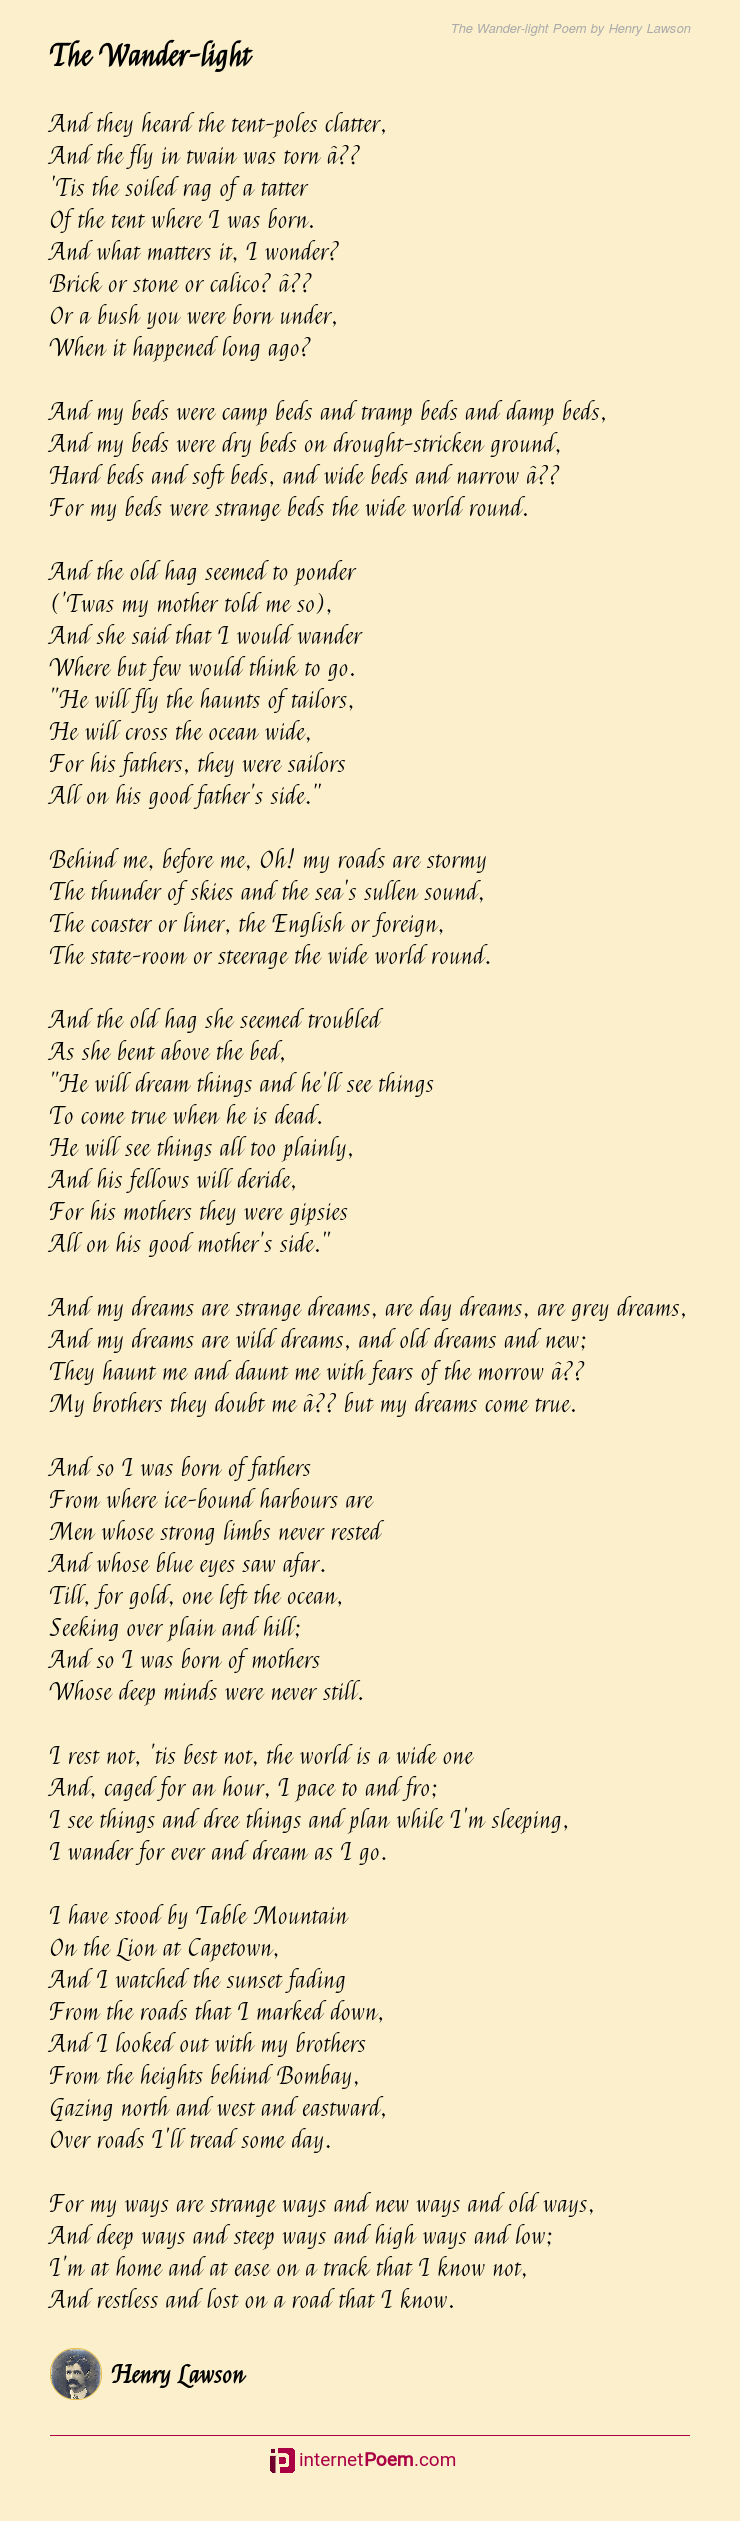 The Wander Light Poem By Henry Lawson Stone, stone, stone, how ancient and wise you must be. the wander light poem by henry lawson